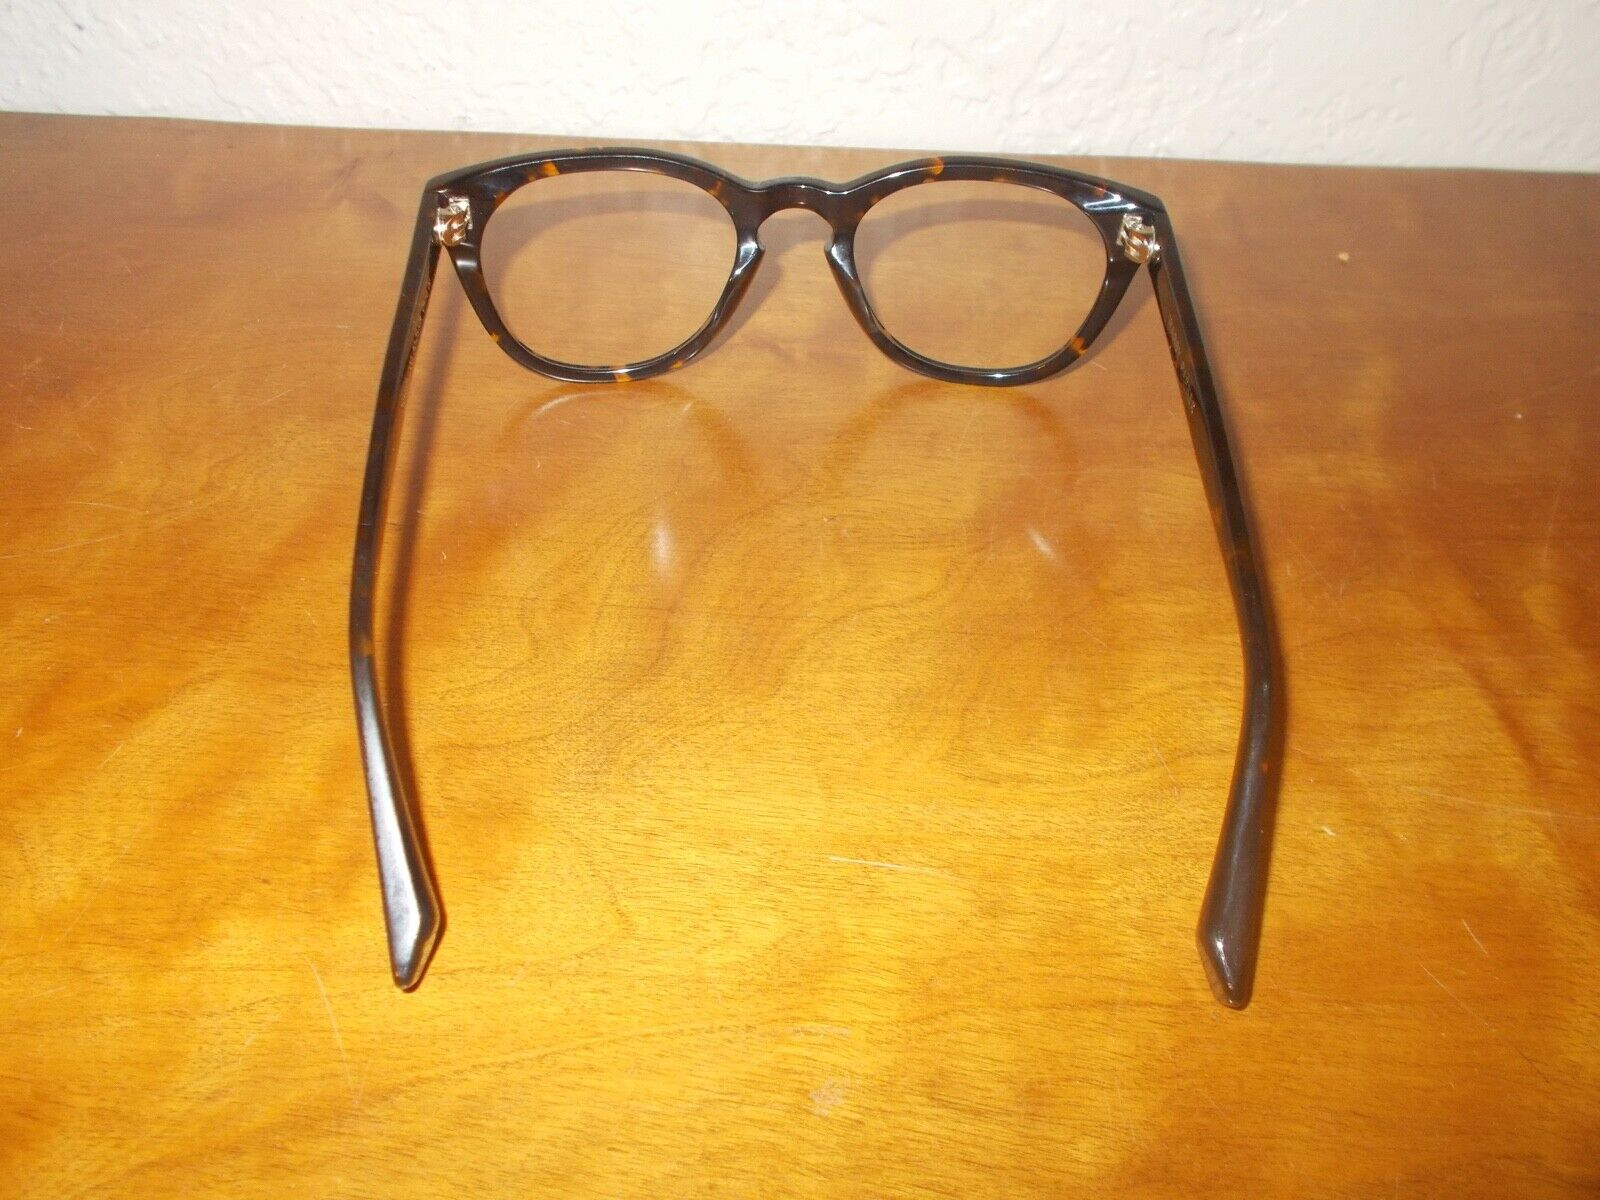 Warby Parker Ormsby 200 Tortoise Frame Sunglasses - image 5